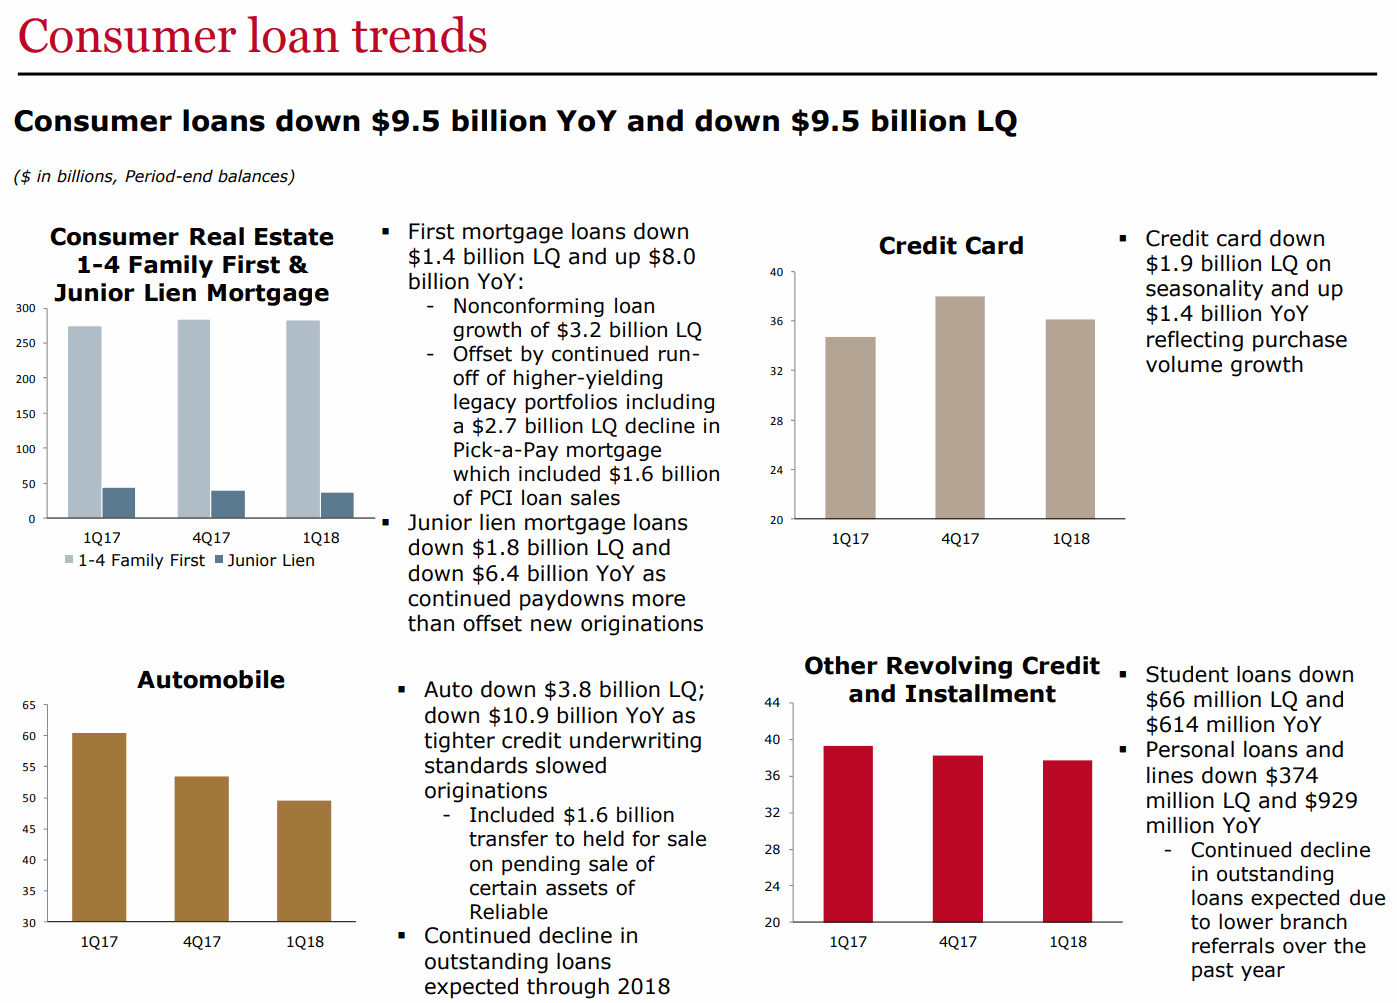 WFC-Consumer-loan-trends